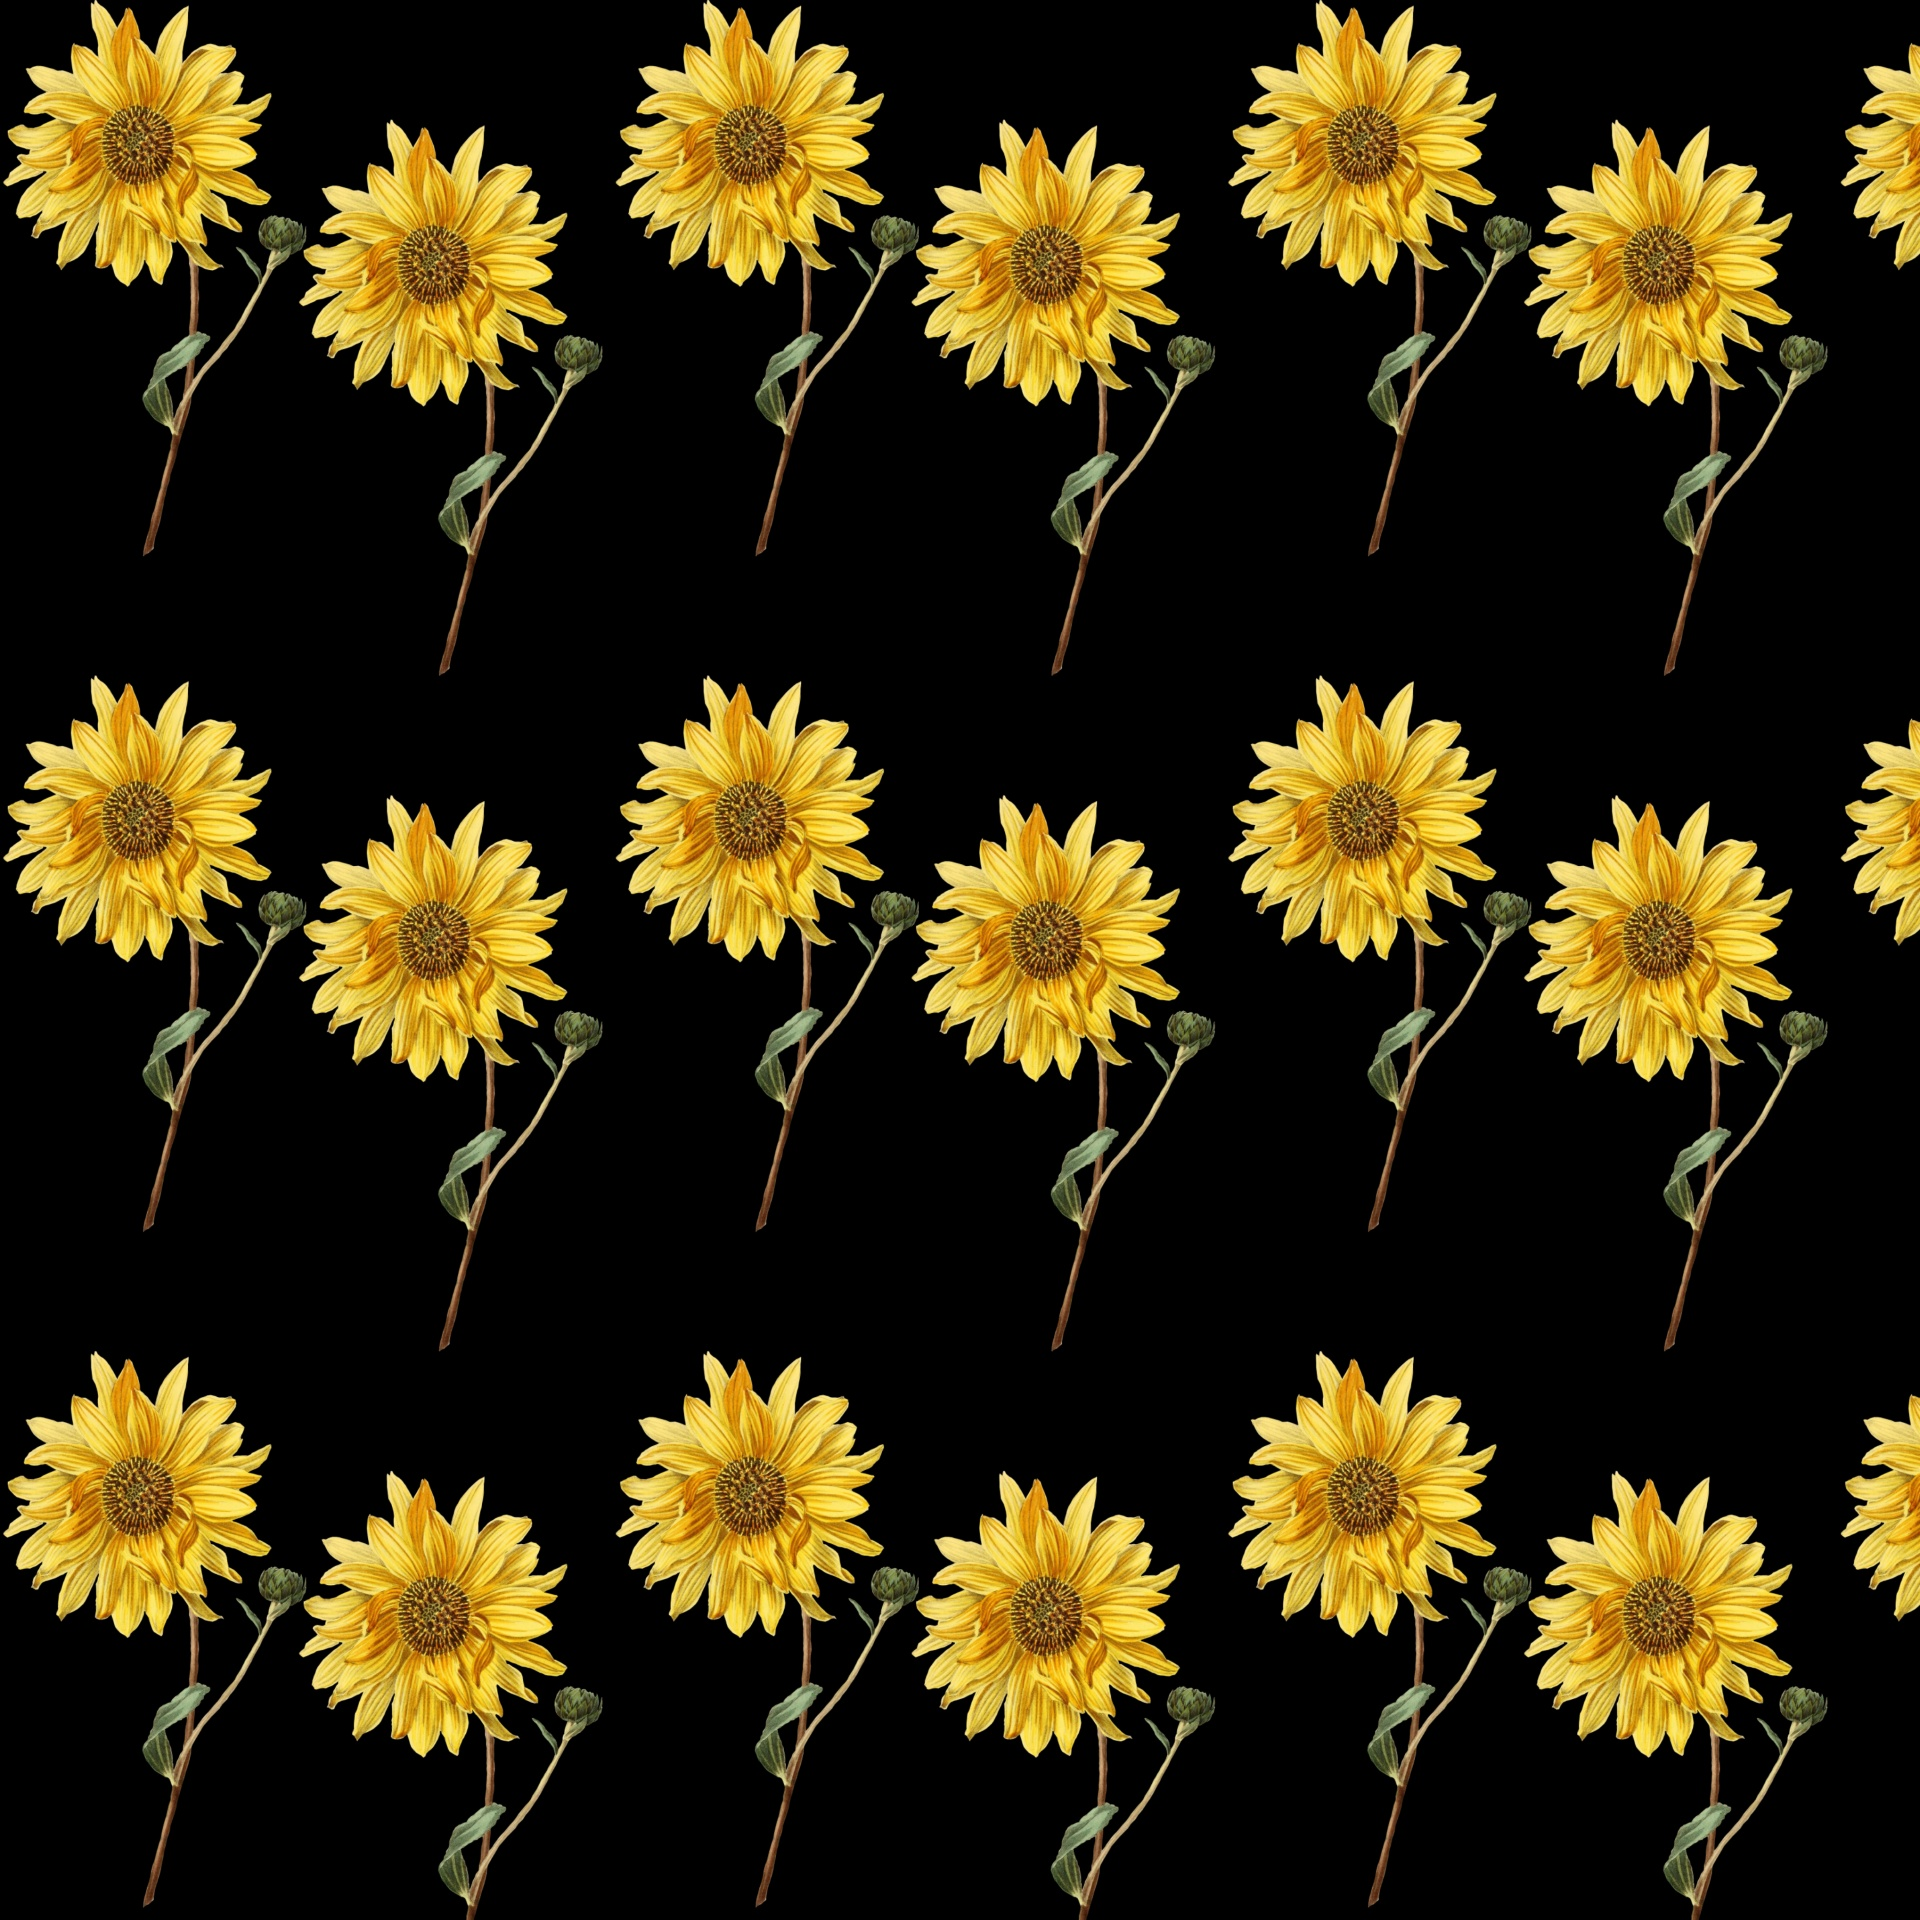 Sunflower Wallpaper Background Free Stock Photo Public Domain Pictures